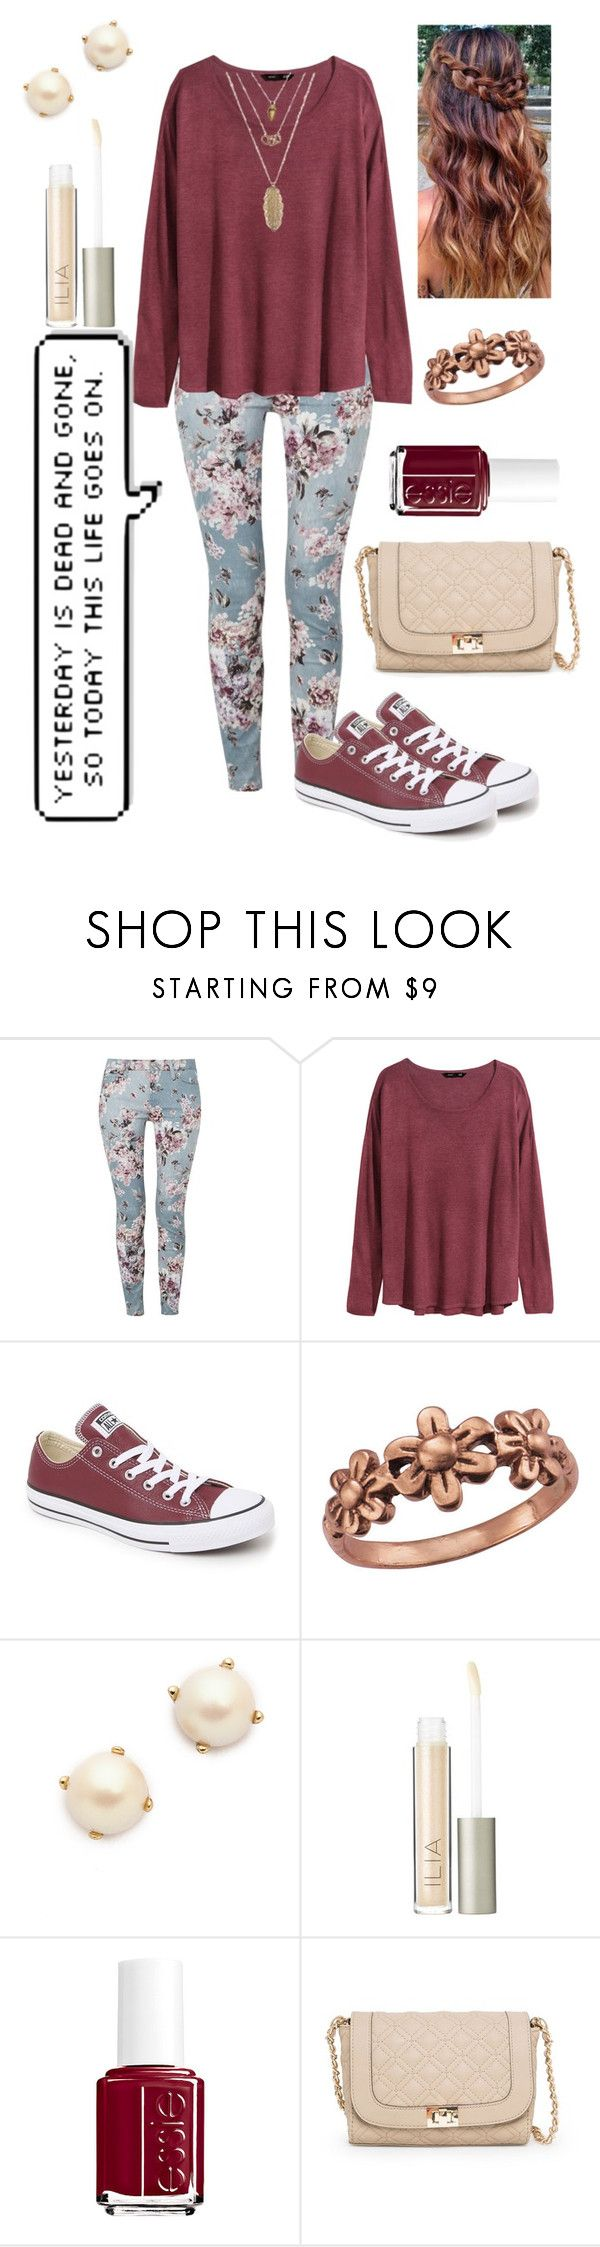 """""""Yesterday is Gone"""" by soccer-13 ❤ liked on Polyvore featuring 7 For All Mankind, H&M, Converse, Marie Chavez, Kate Spade, Ilia, Essie and MANGO"""